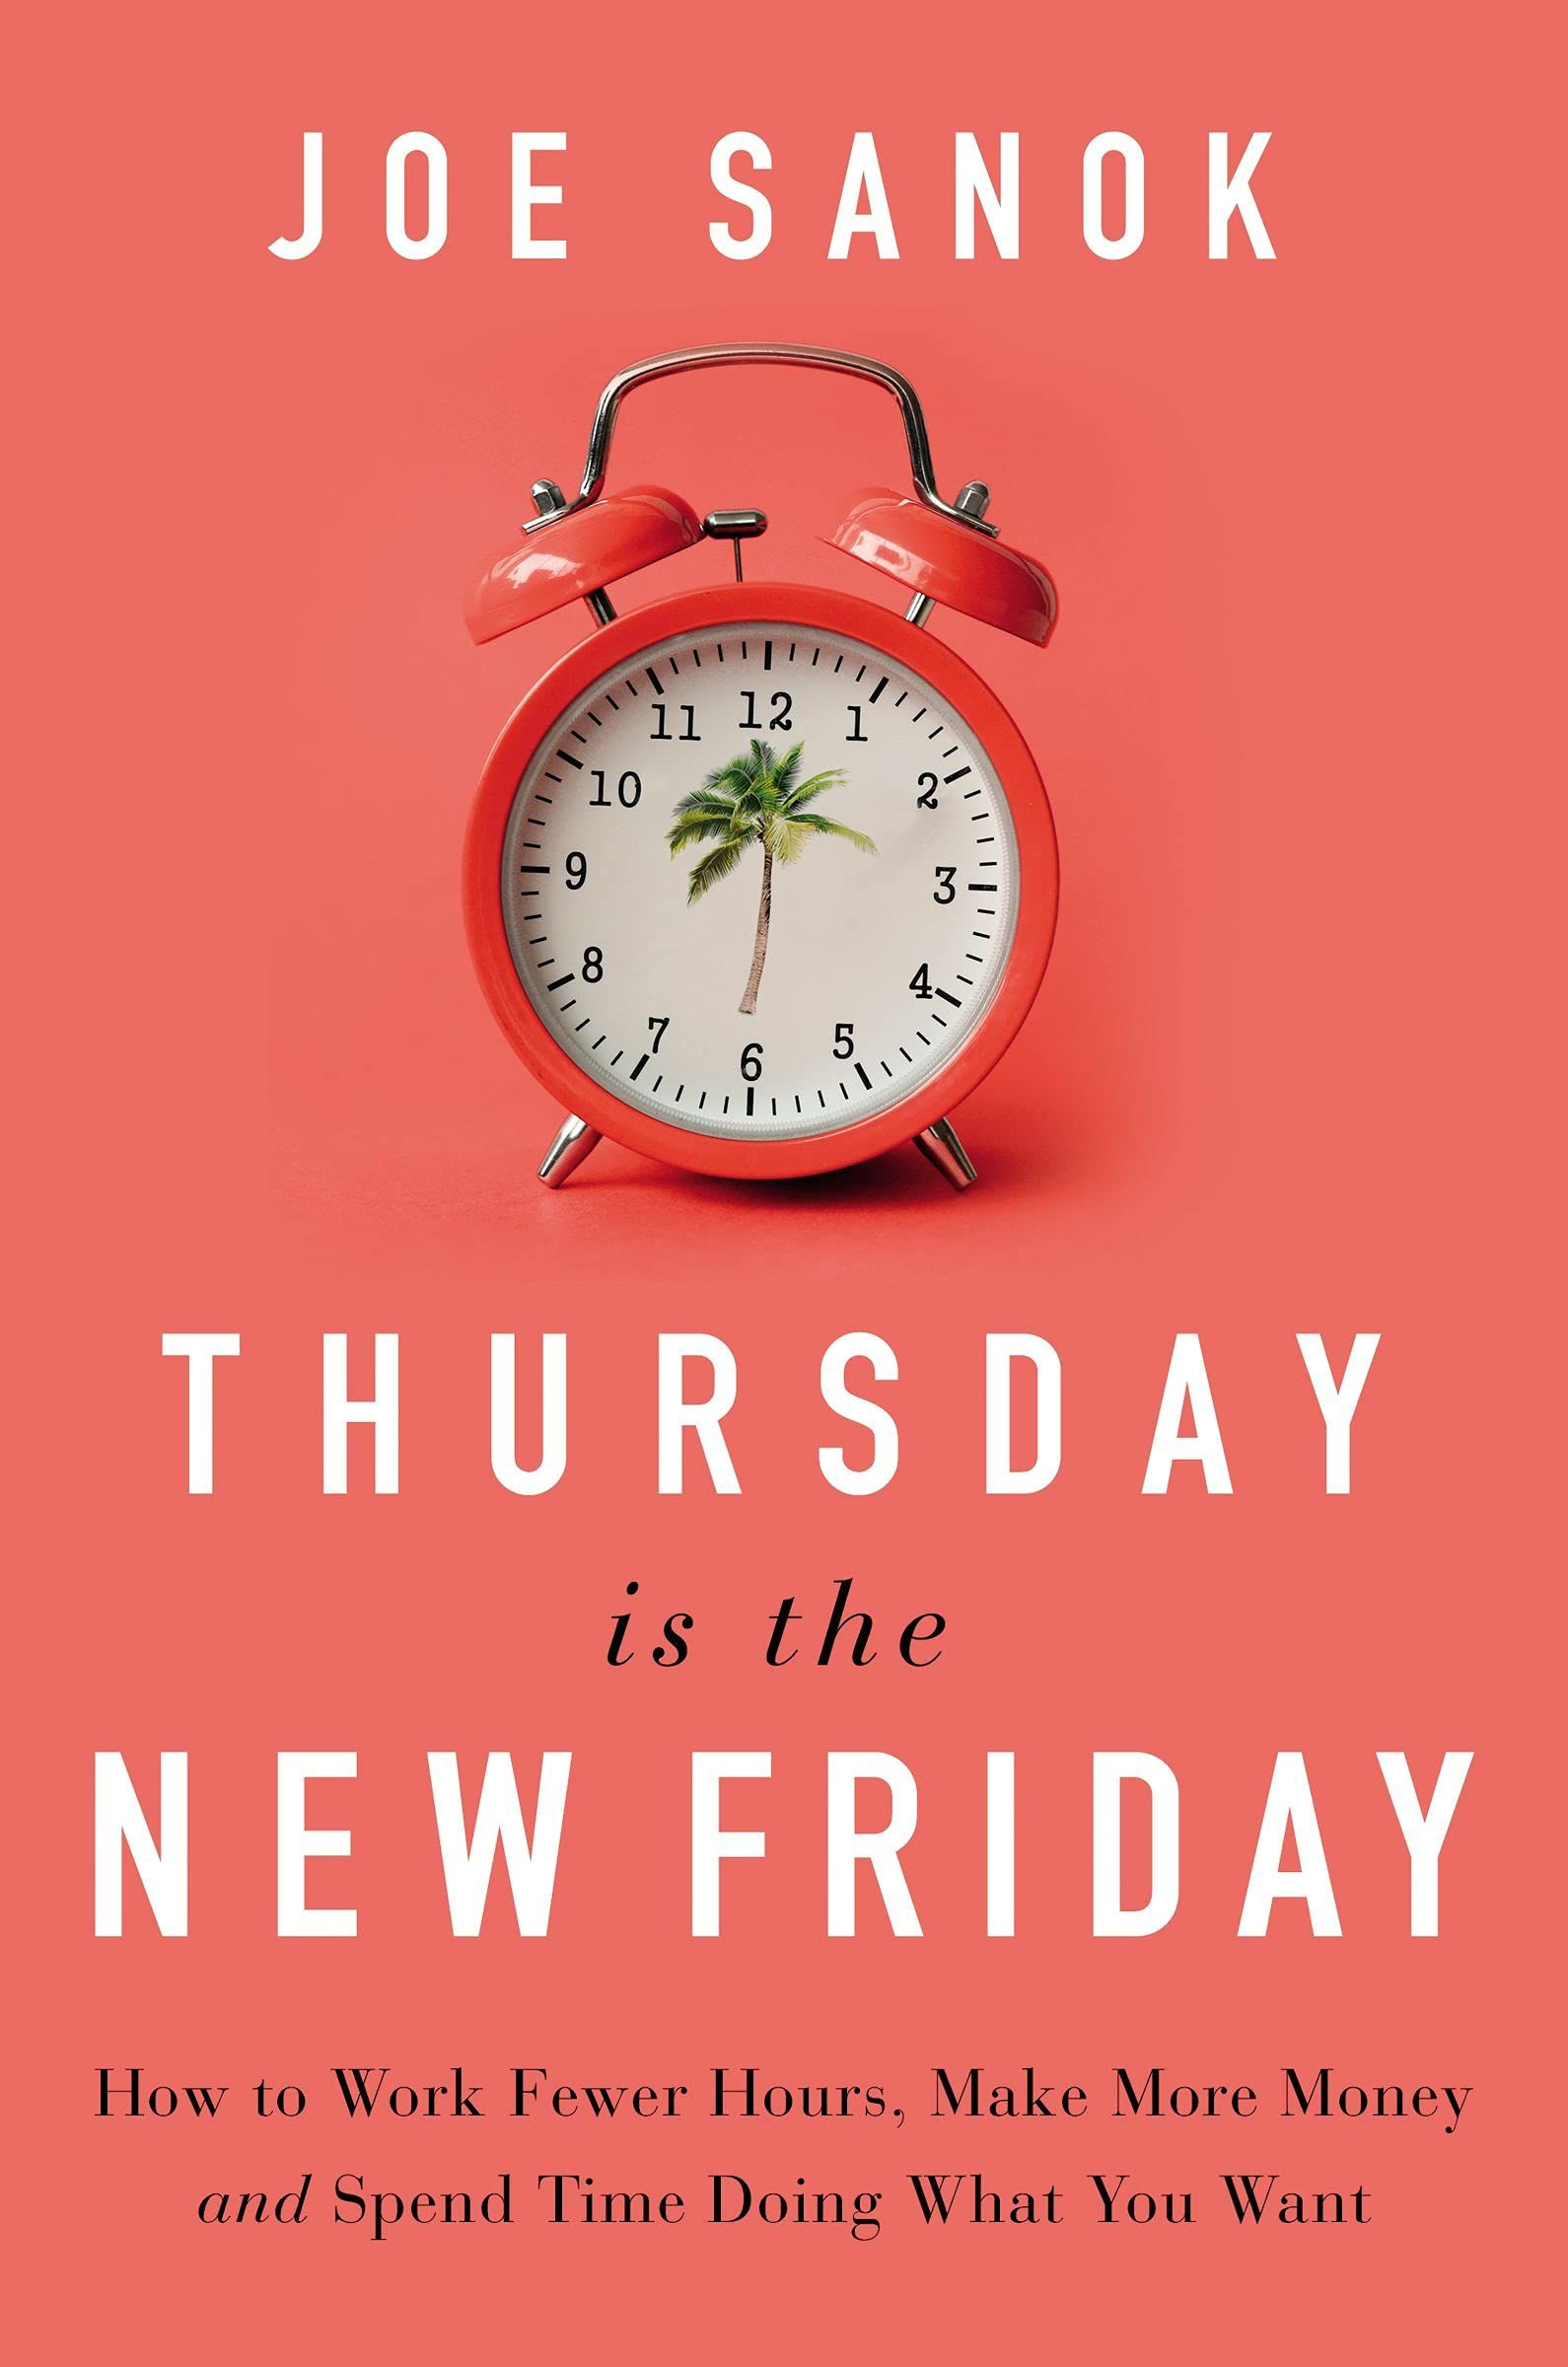 Thursday is the New Friday : How to Work Fewer Hours, Make More Money, and Spend Time Doing What You Want